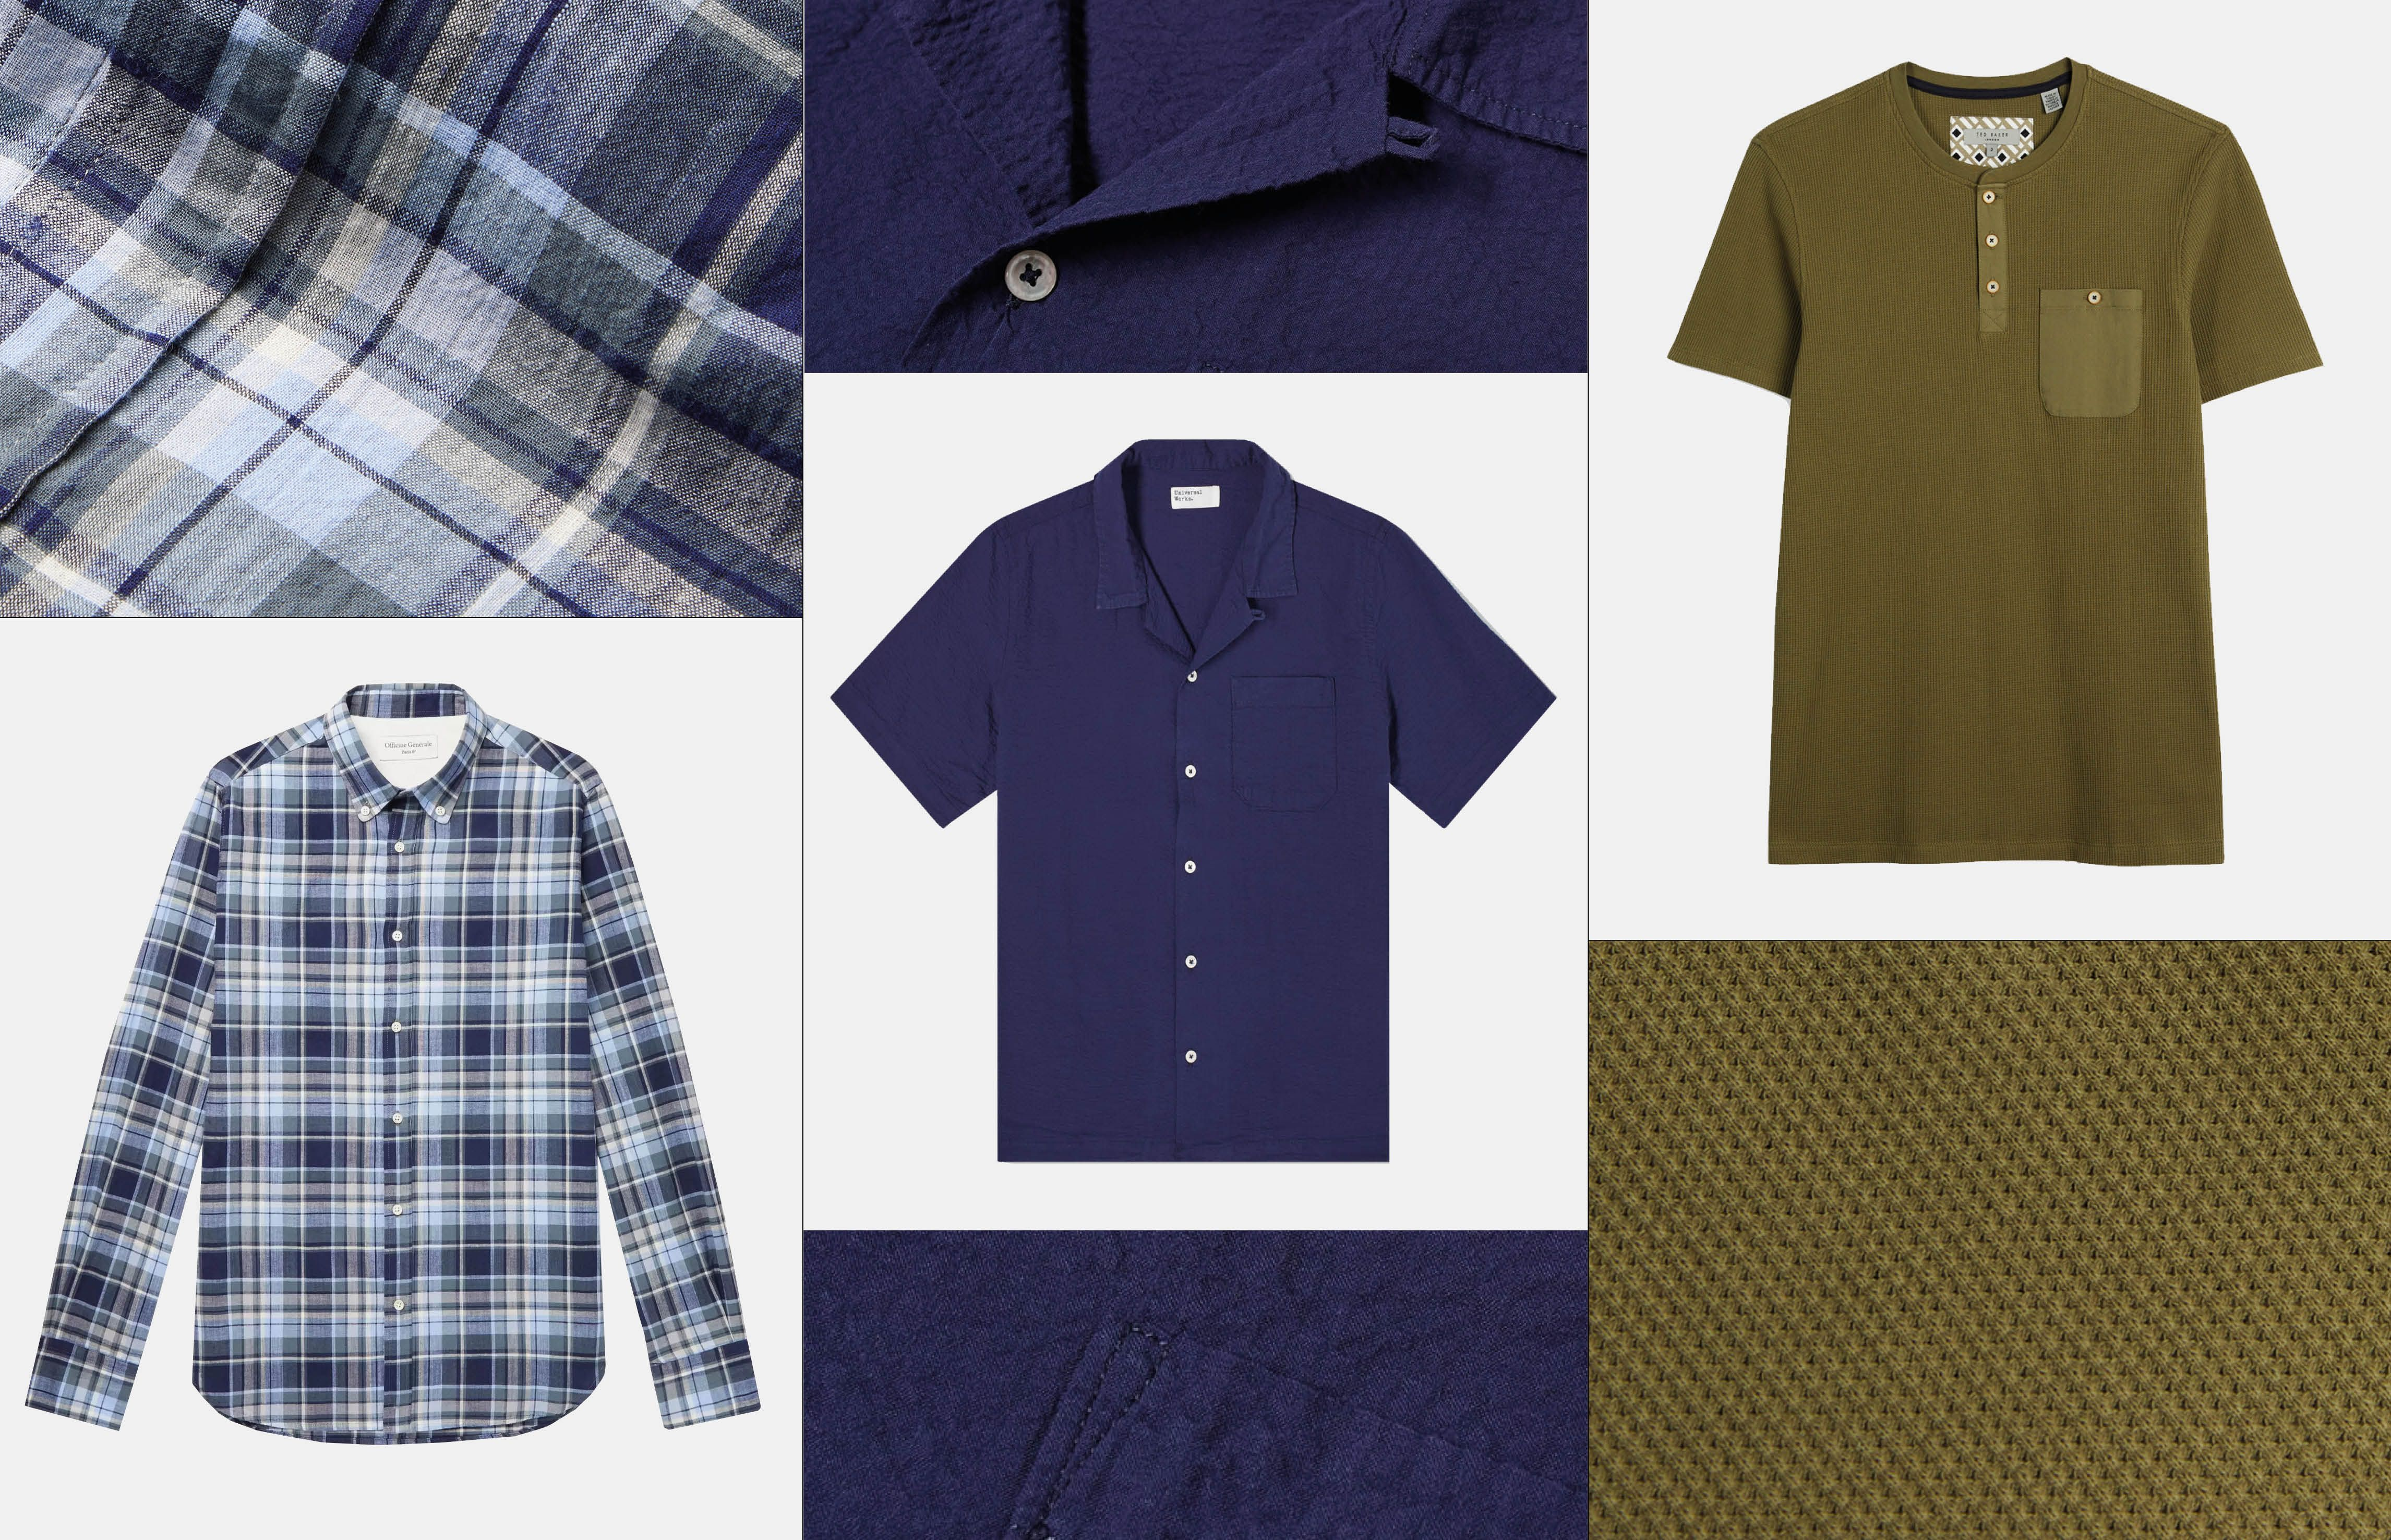 The best warm-weather tops to own in your 50s